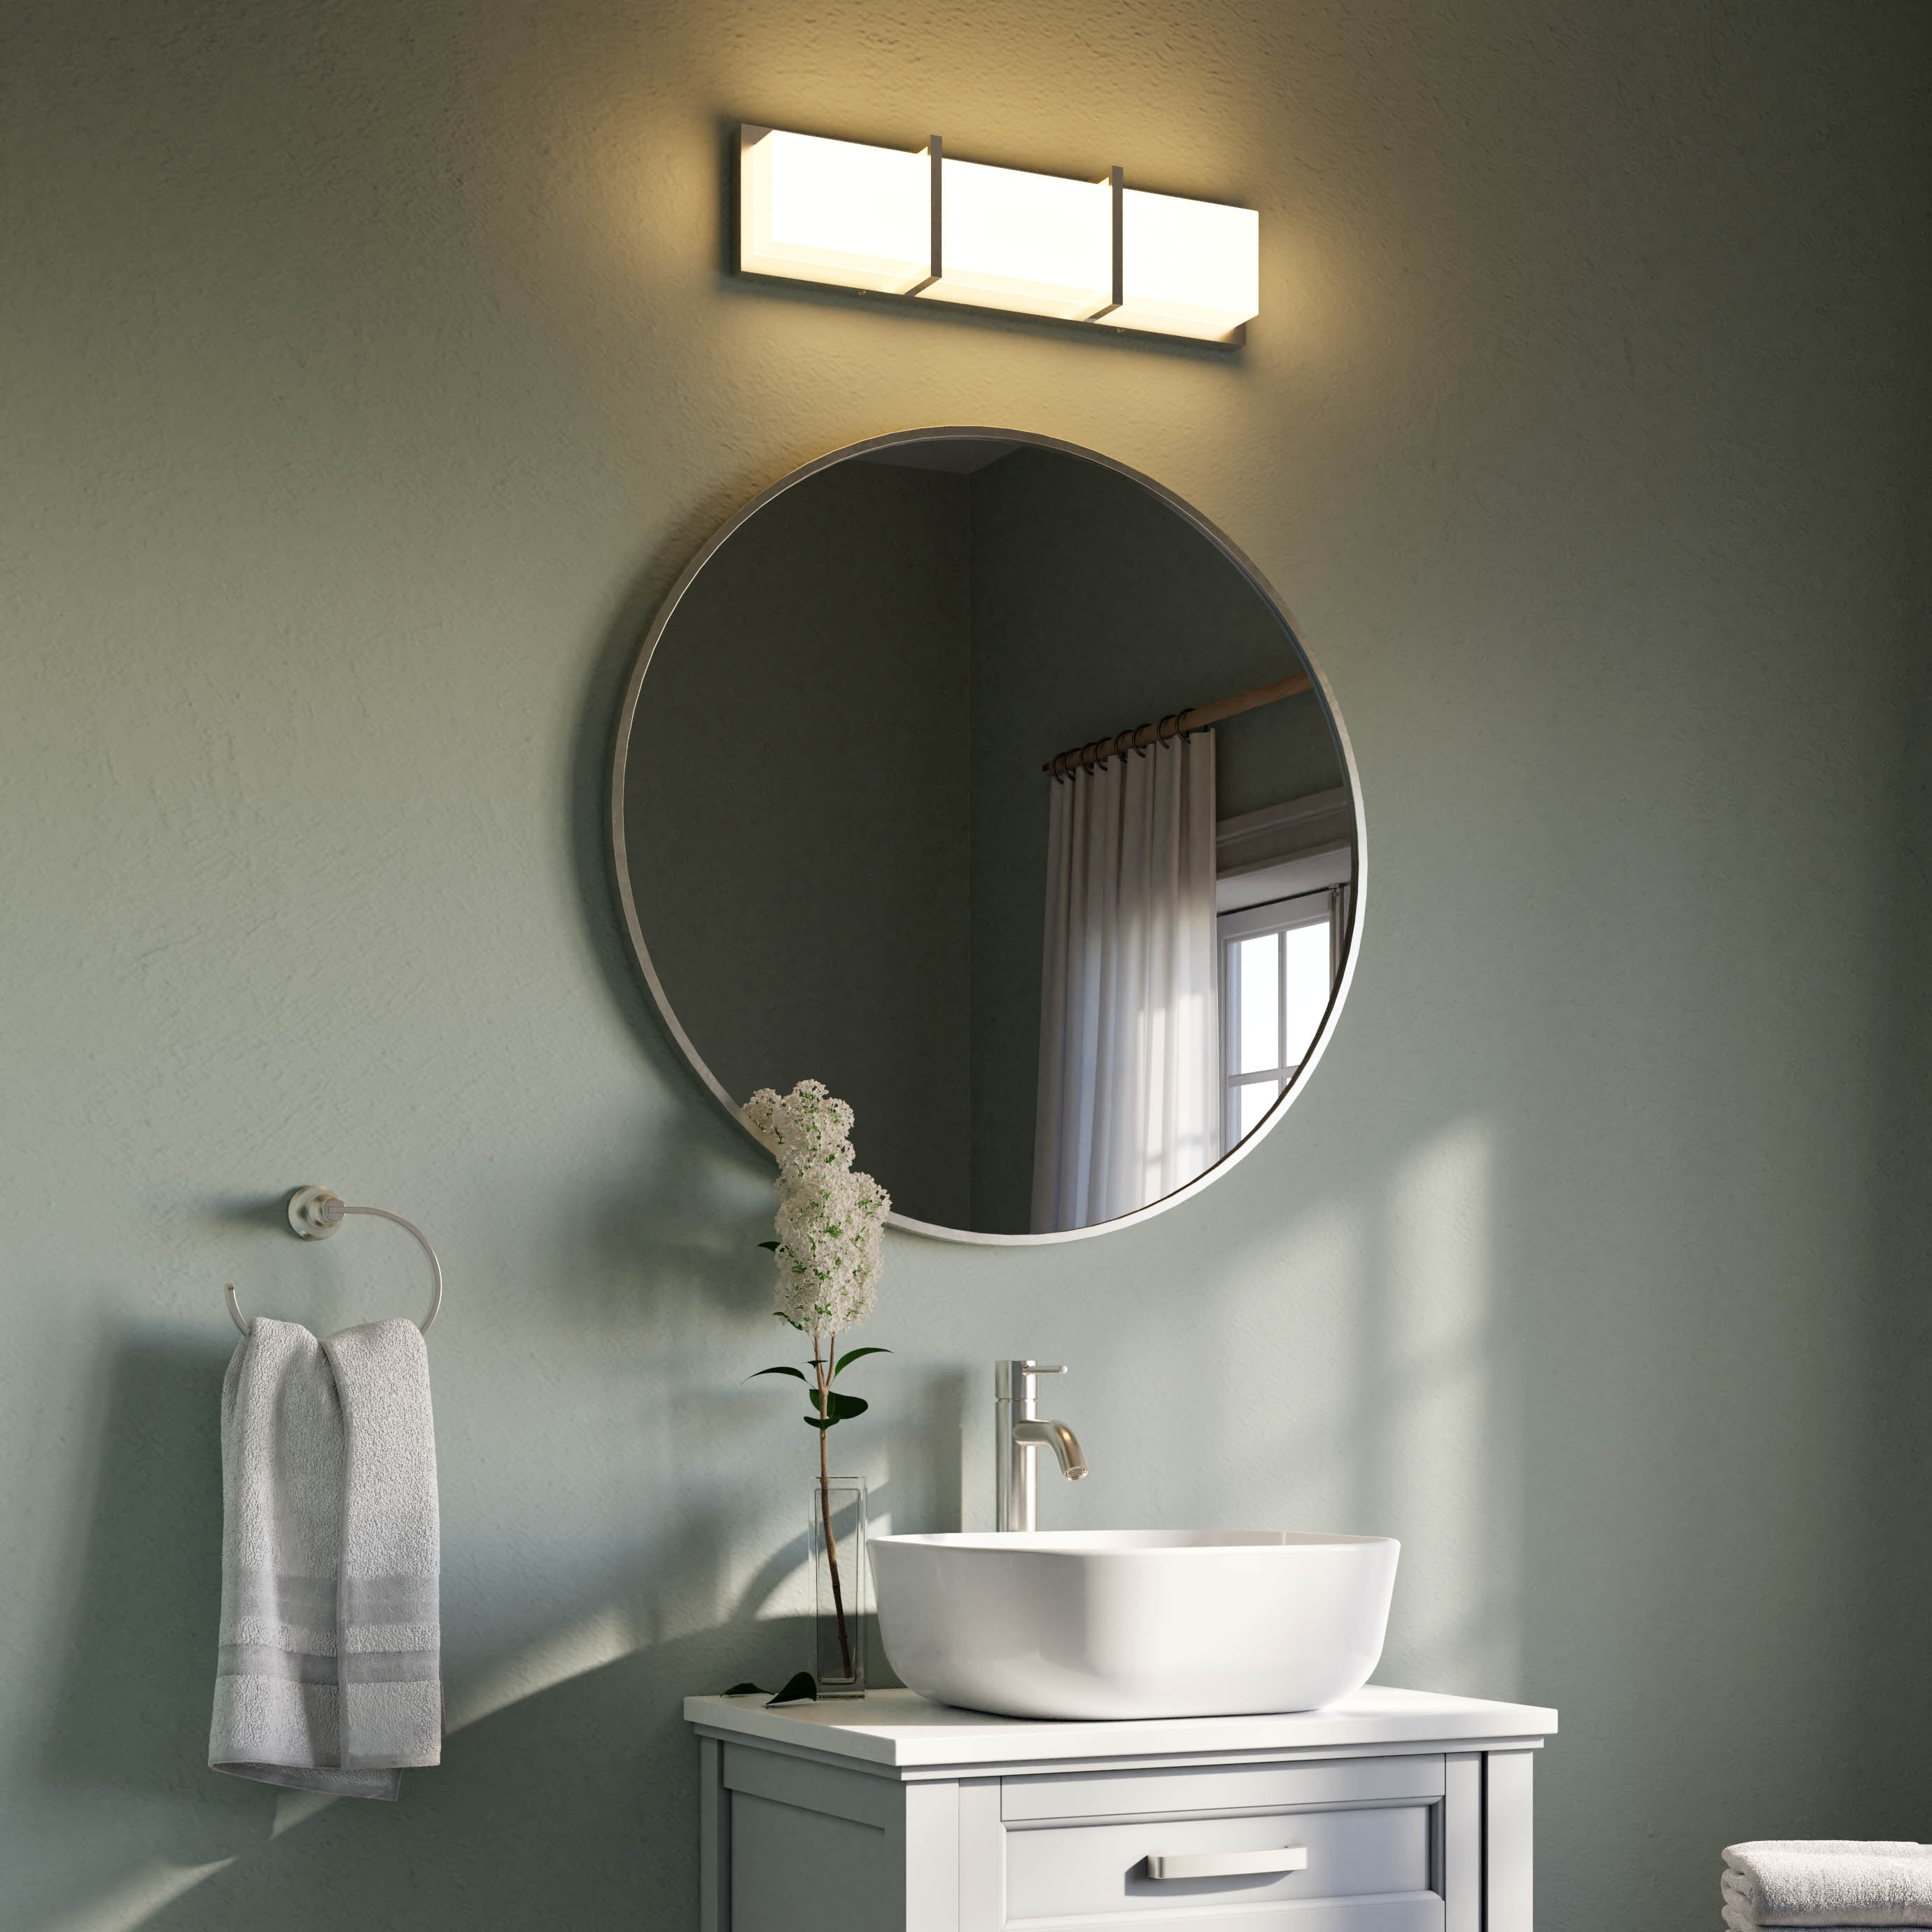 Allen Roth Roveland 30 In Brushed Nickel Round Bathroom Mirror At Lowes Com